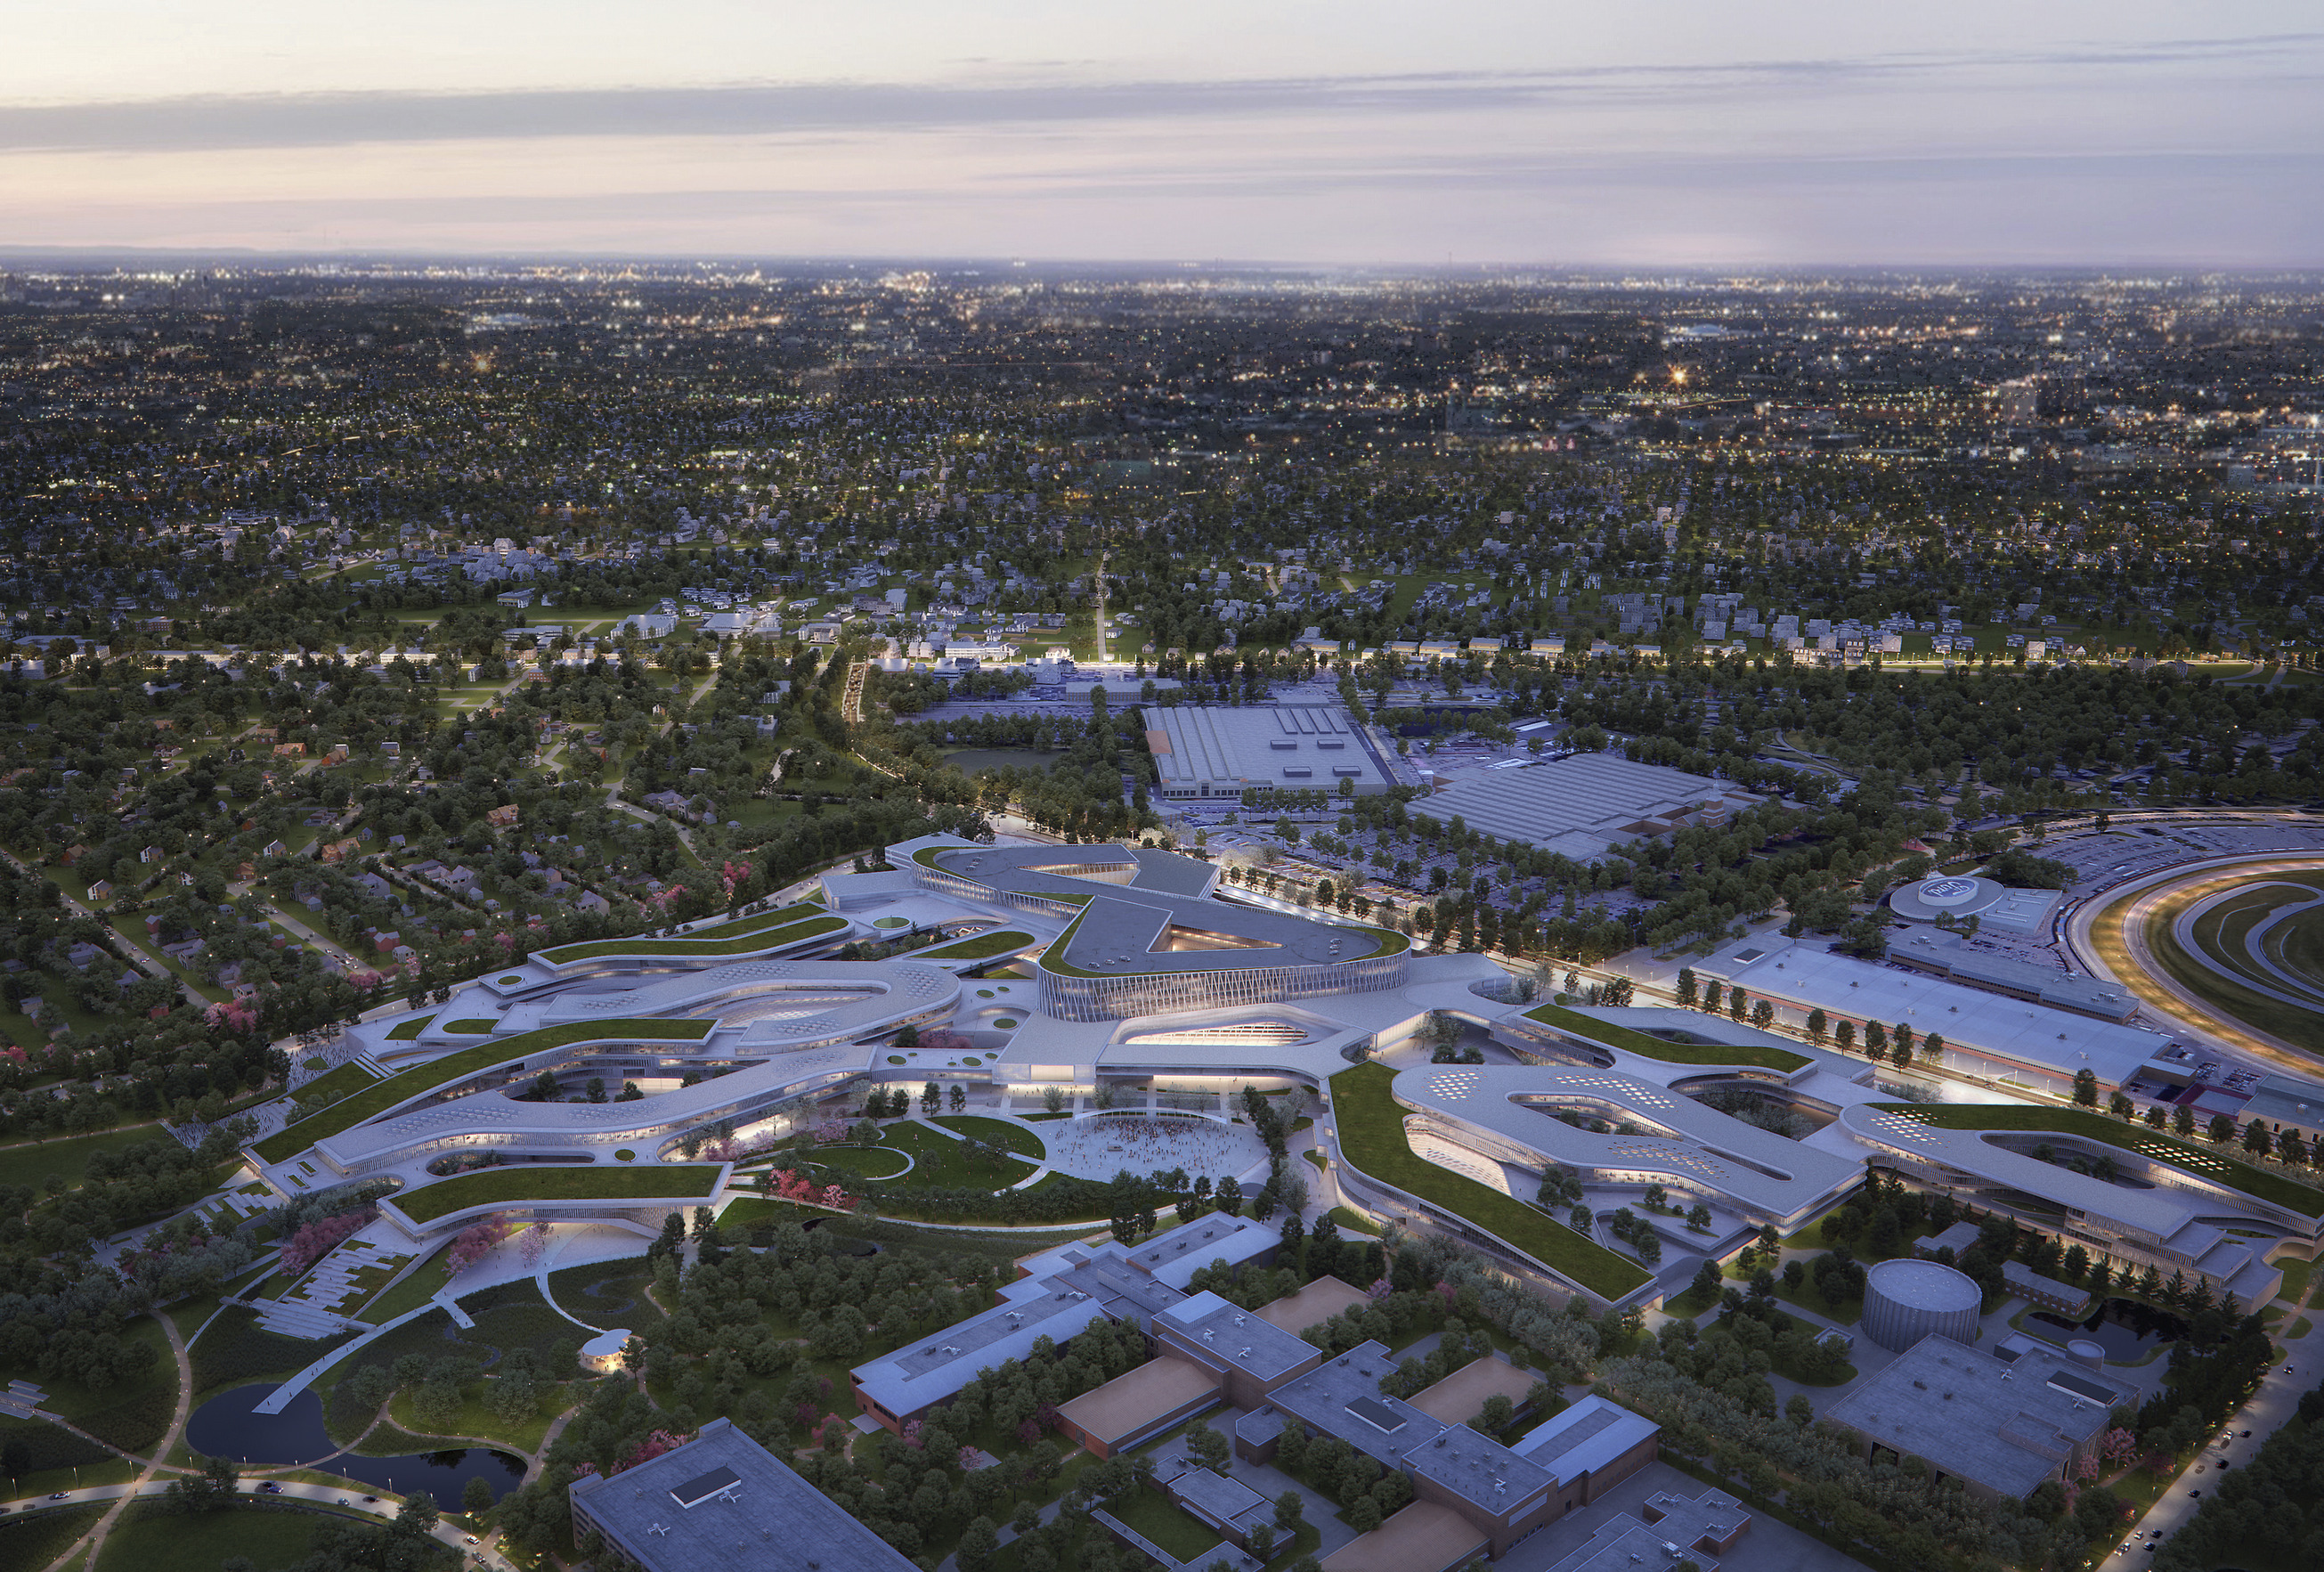 Birds-eye view of a sprawling campus of winding, low white buildings surrounded by trees. It's near sunset and the buildings have lights on.